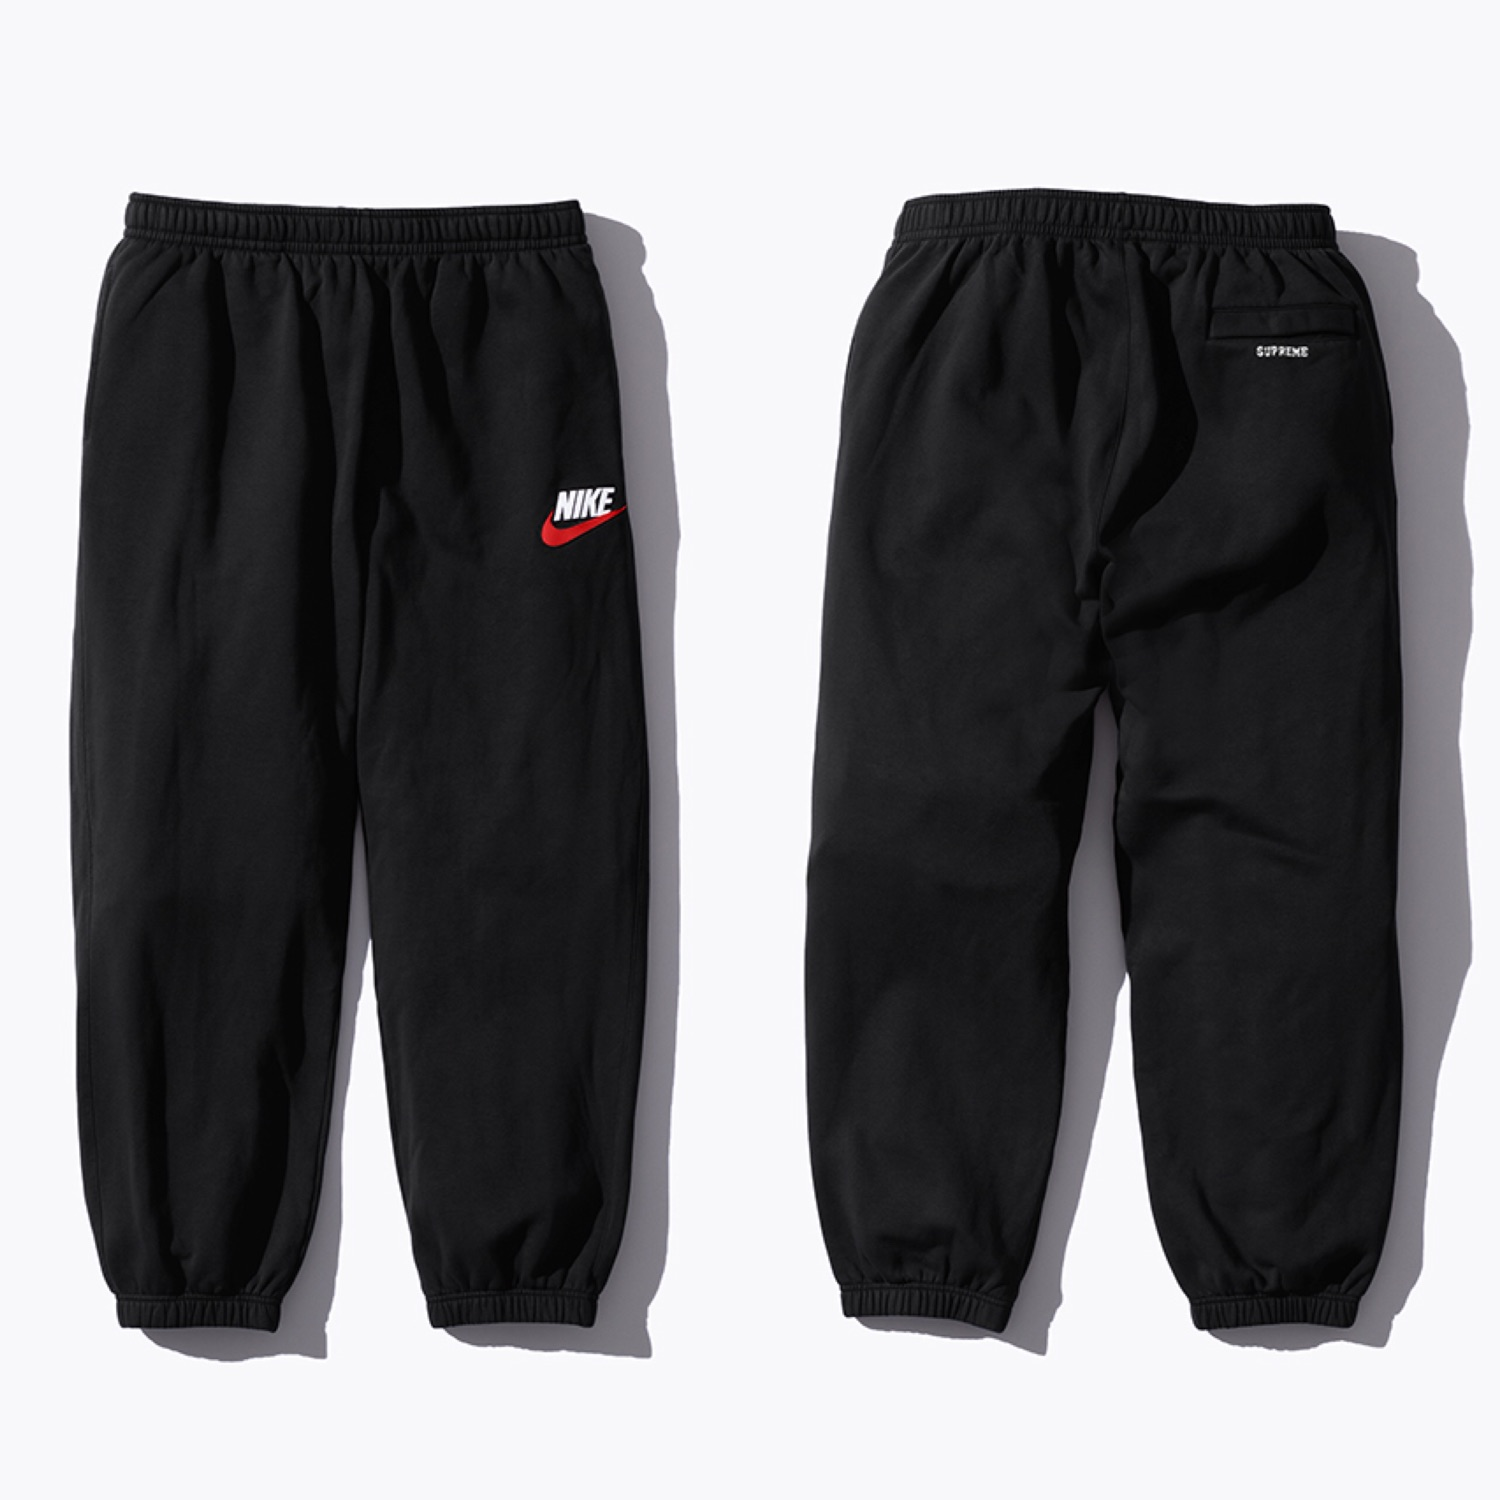 supreme x nike sweatpants